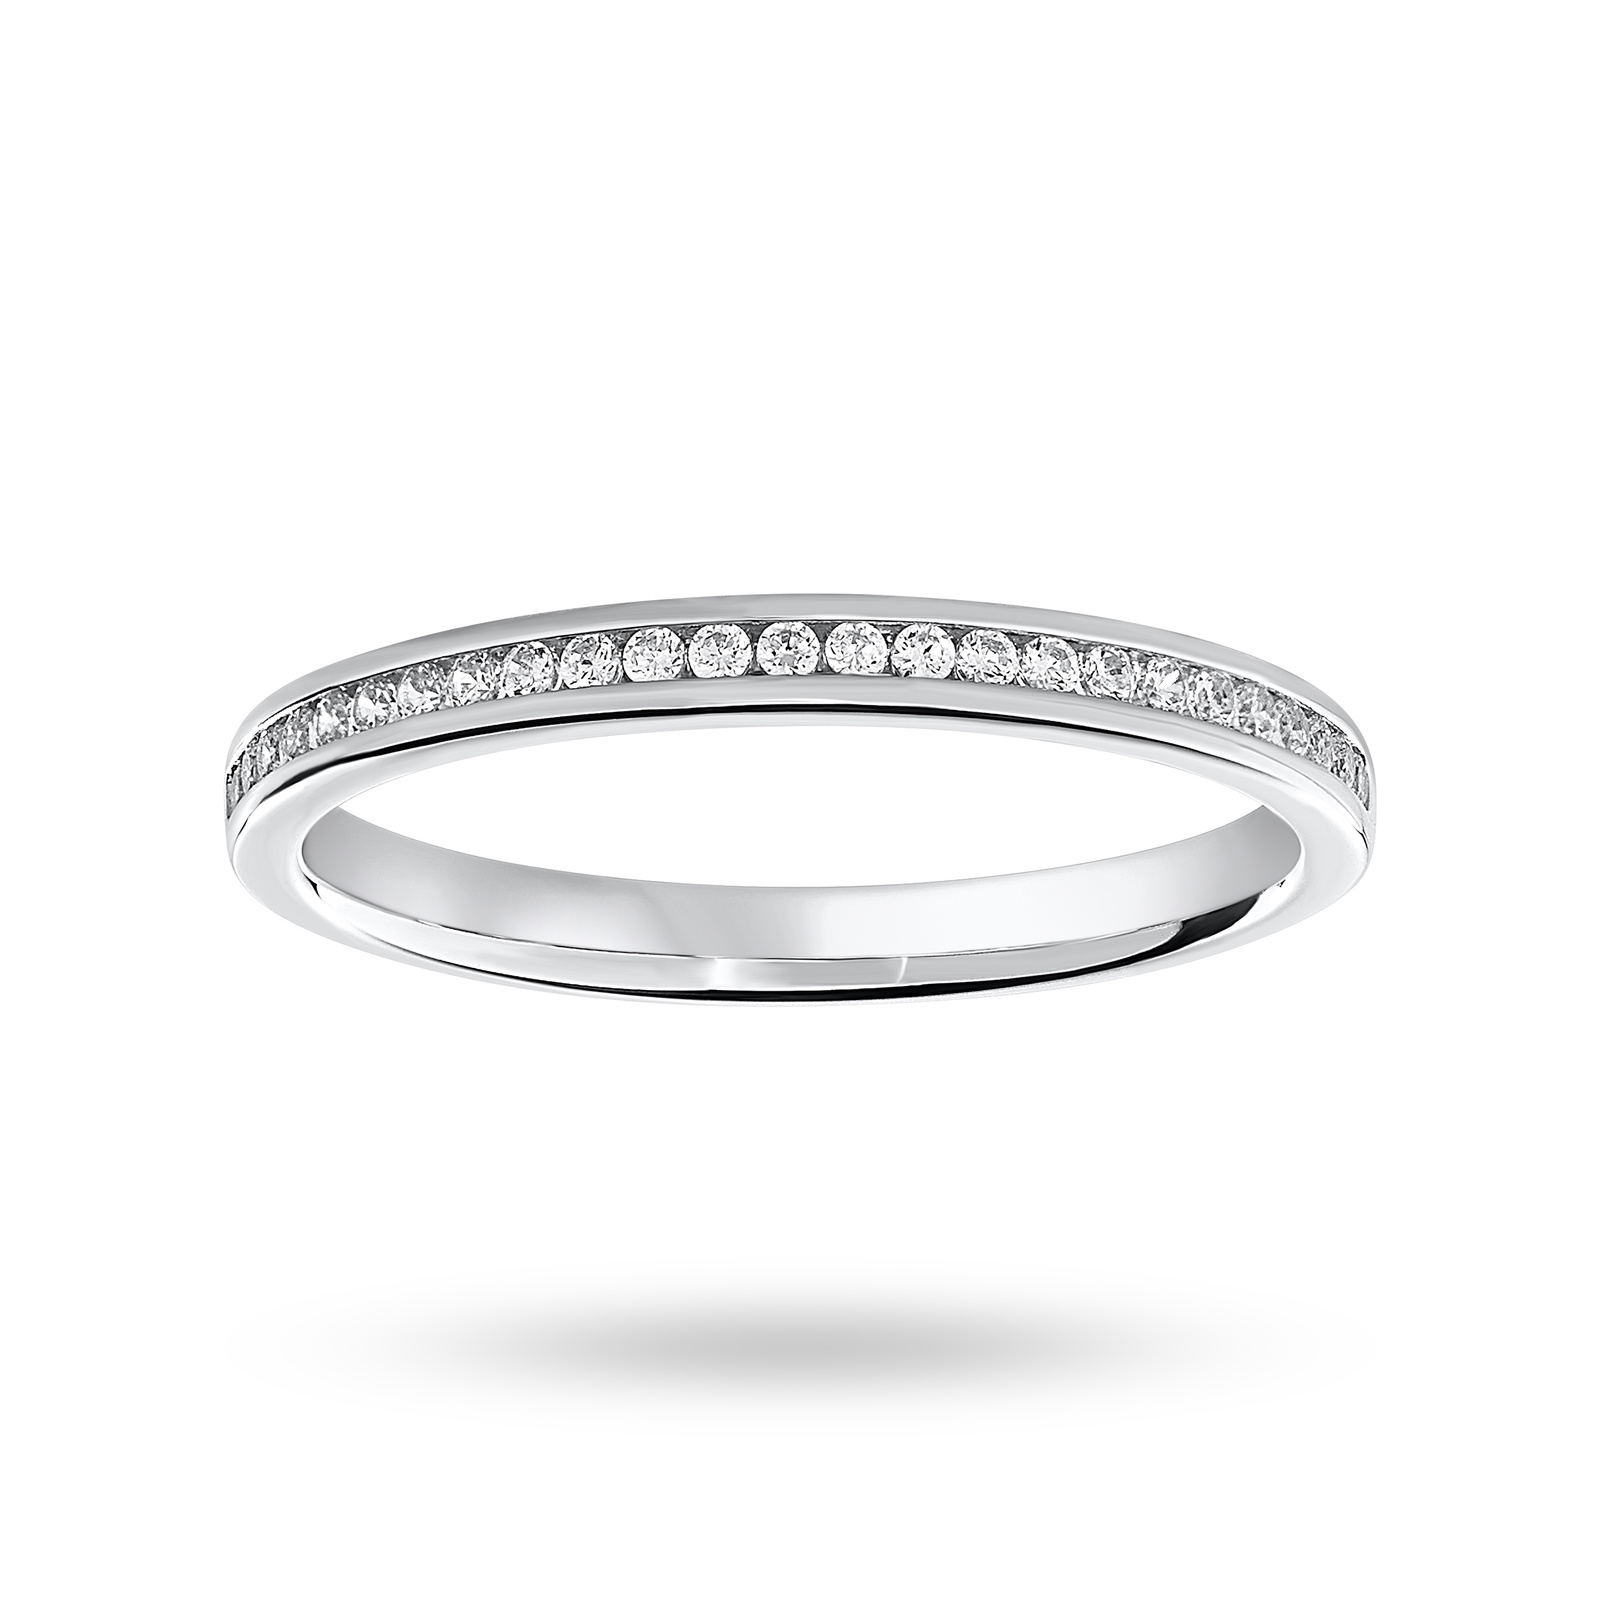 Platinum 0.12 Carat Brilliant Cut Half Eternity Ring